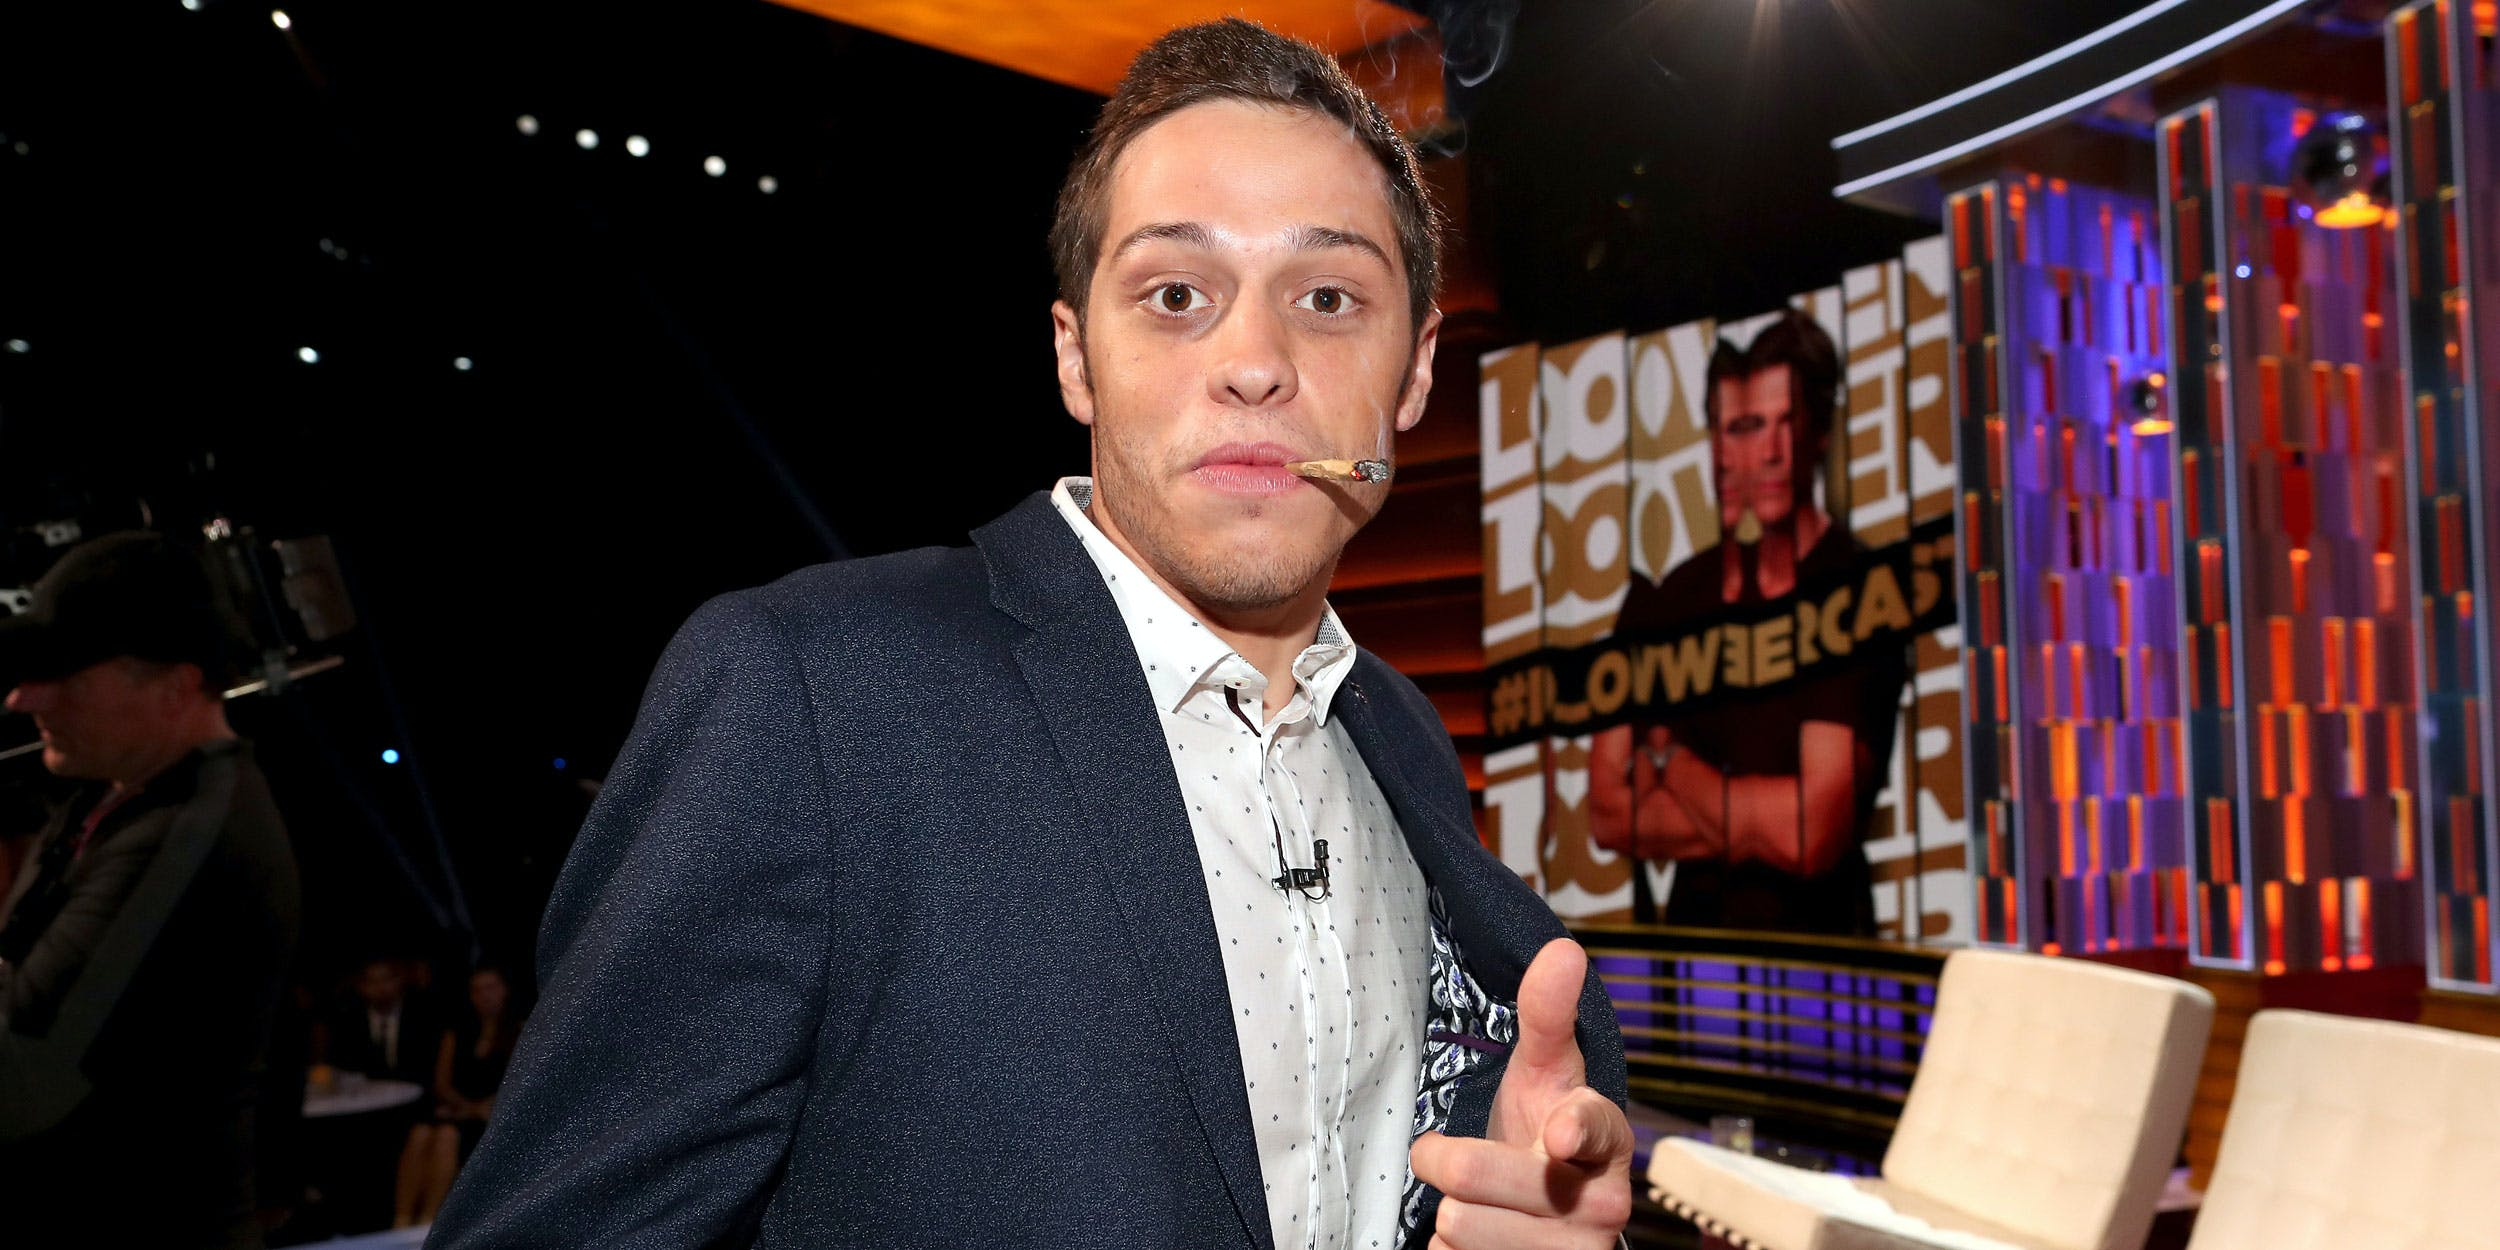 Actor Pete Davidson attends The Comedy Central Roast of Rob Lowe at Sony Studios on August 27, 2016 in Los Angeles, California.